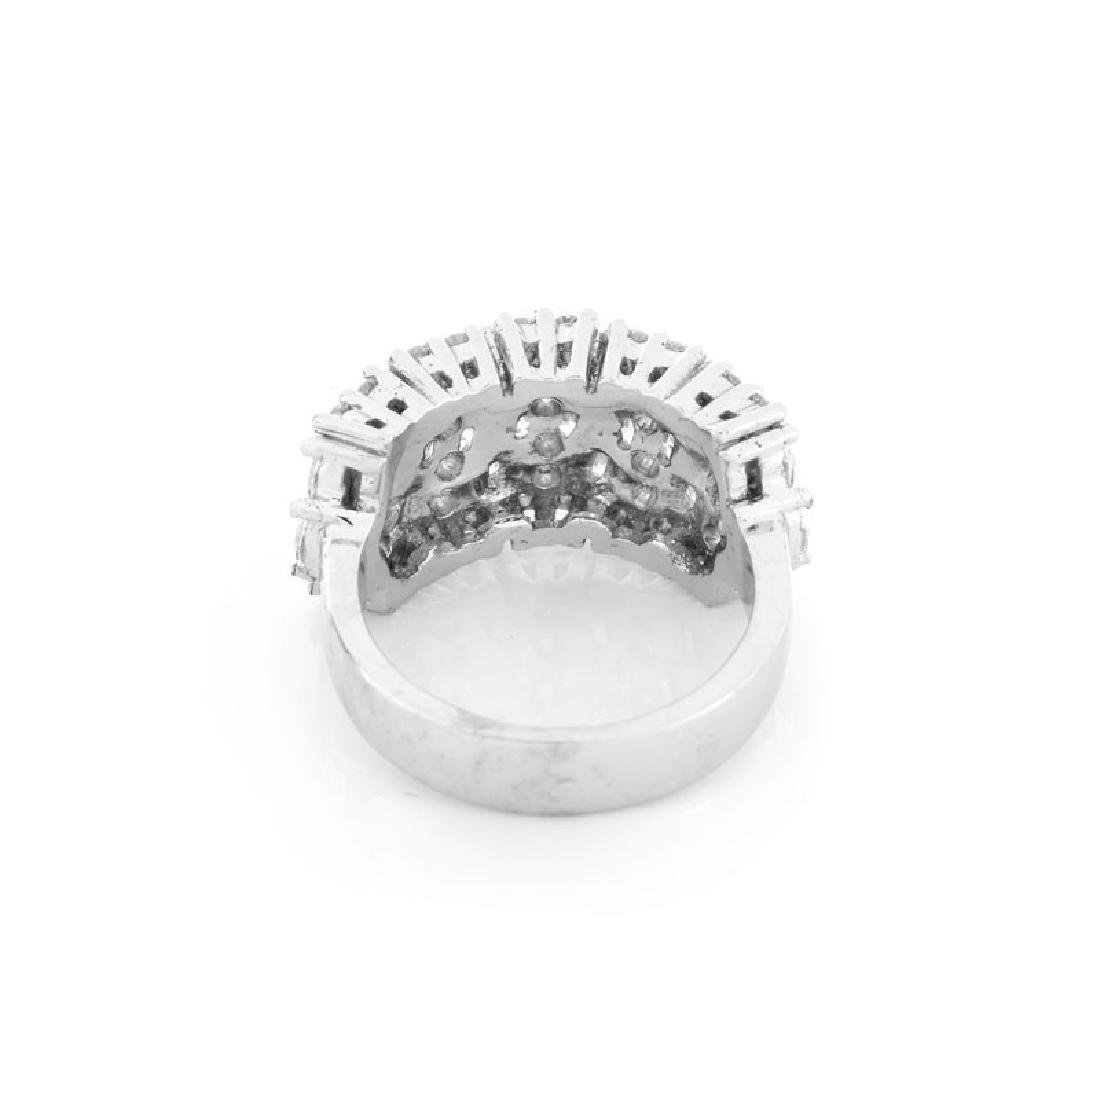 Approx. 2.35 Carat TW Marquise and Round Brilliant Cut - 4